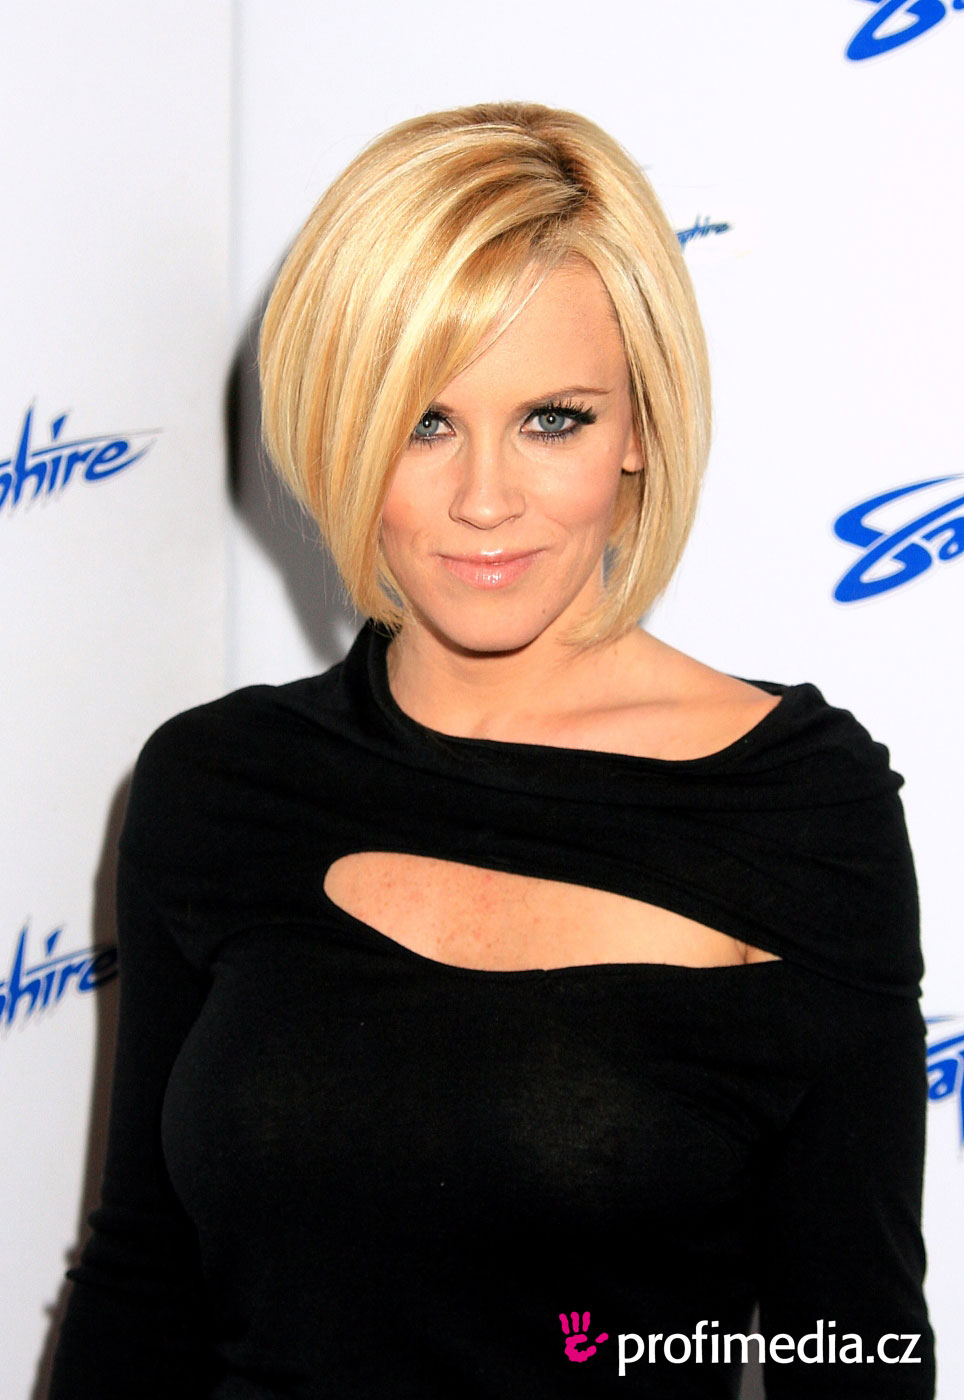 prom hairstyle - jenny mccarthy - jenny mccarthy